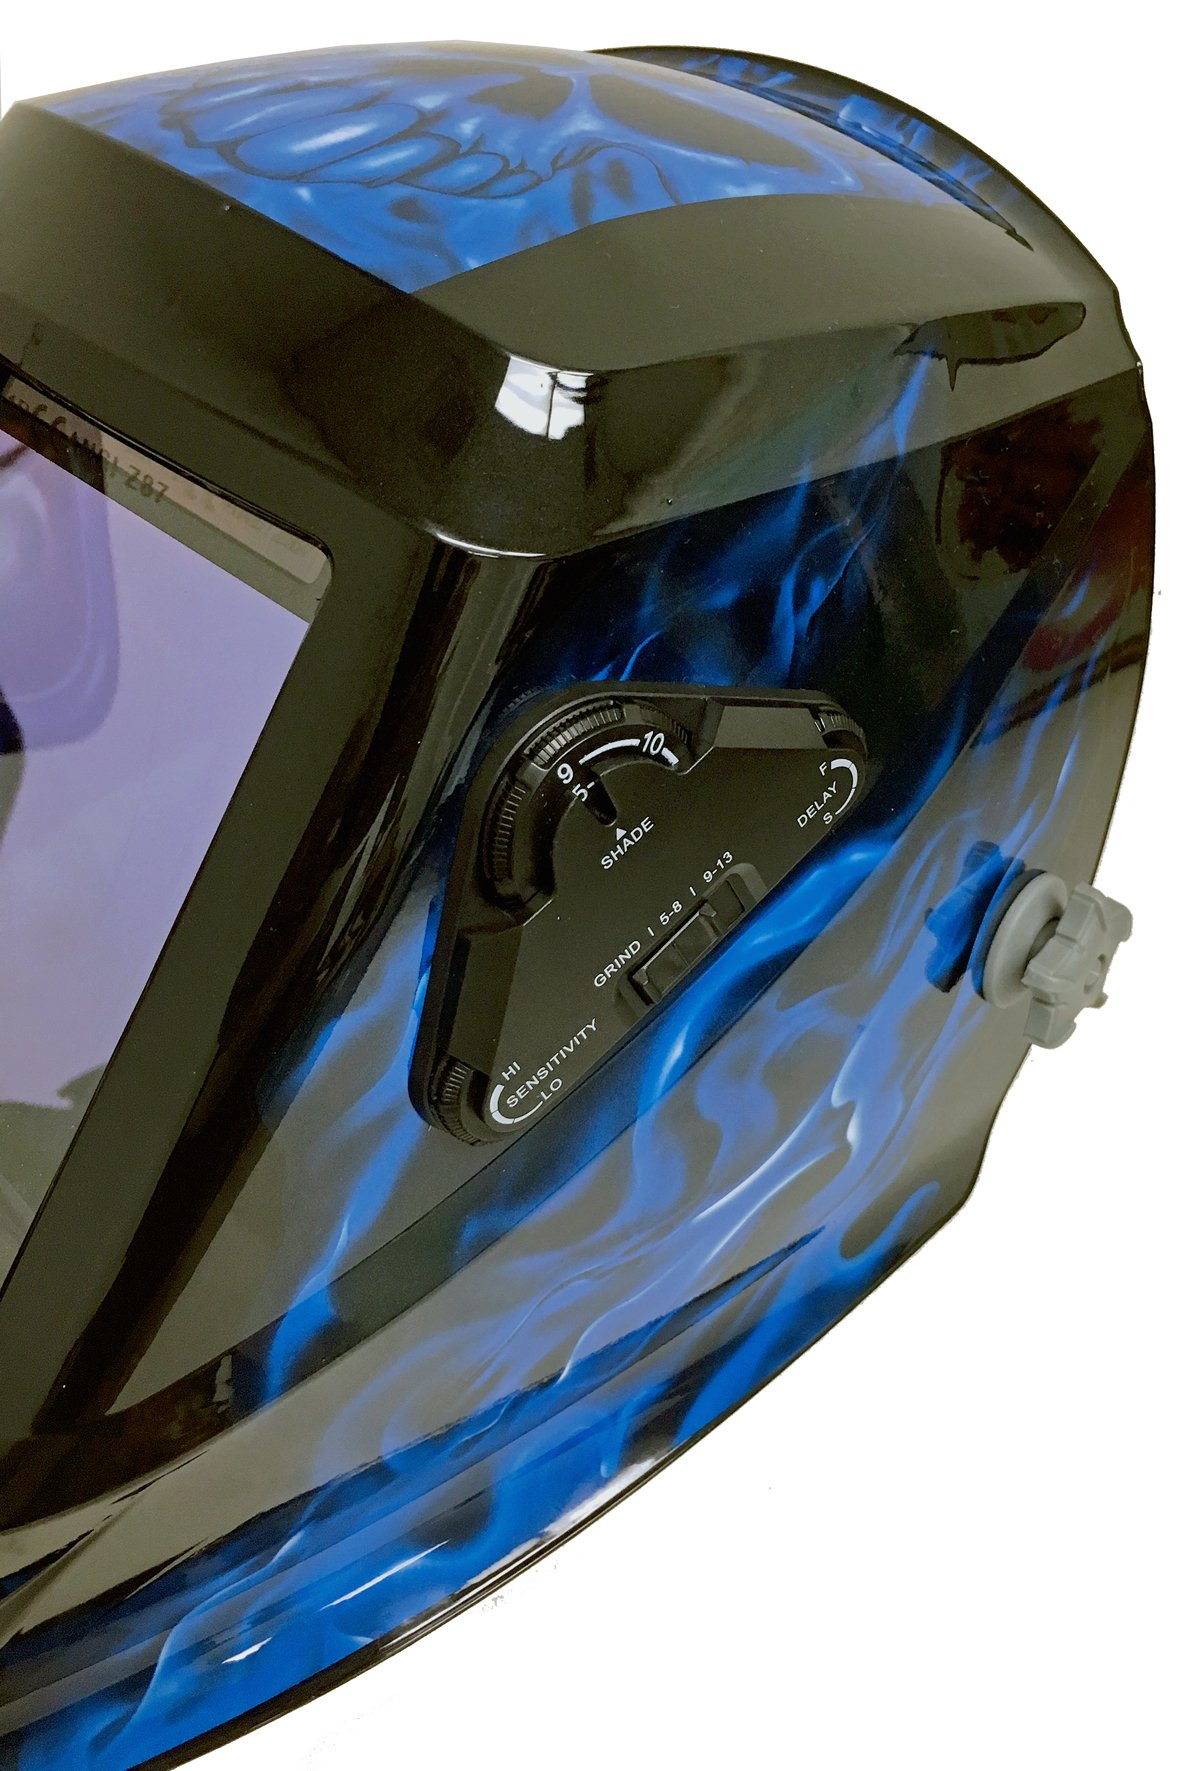 Instapark ADF Series GX990T Solar Powered Auto Darkening Welding Helmet with 4 Optical Sensors, 3.94'' X 3.86'' Viewing Area and Adjustable Shade Range #5 - #13 Bluish Devil by Instapark (Image #3)